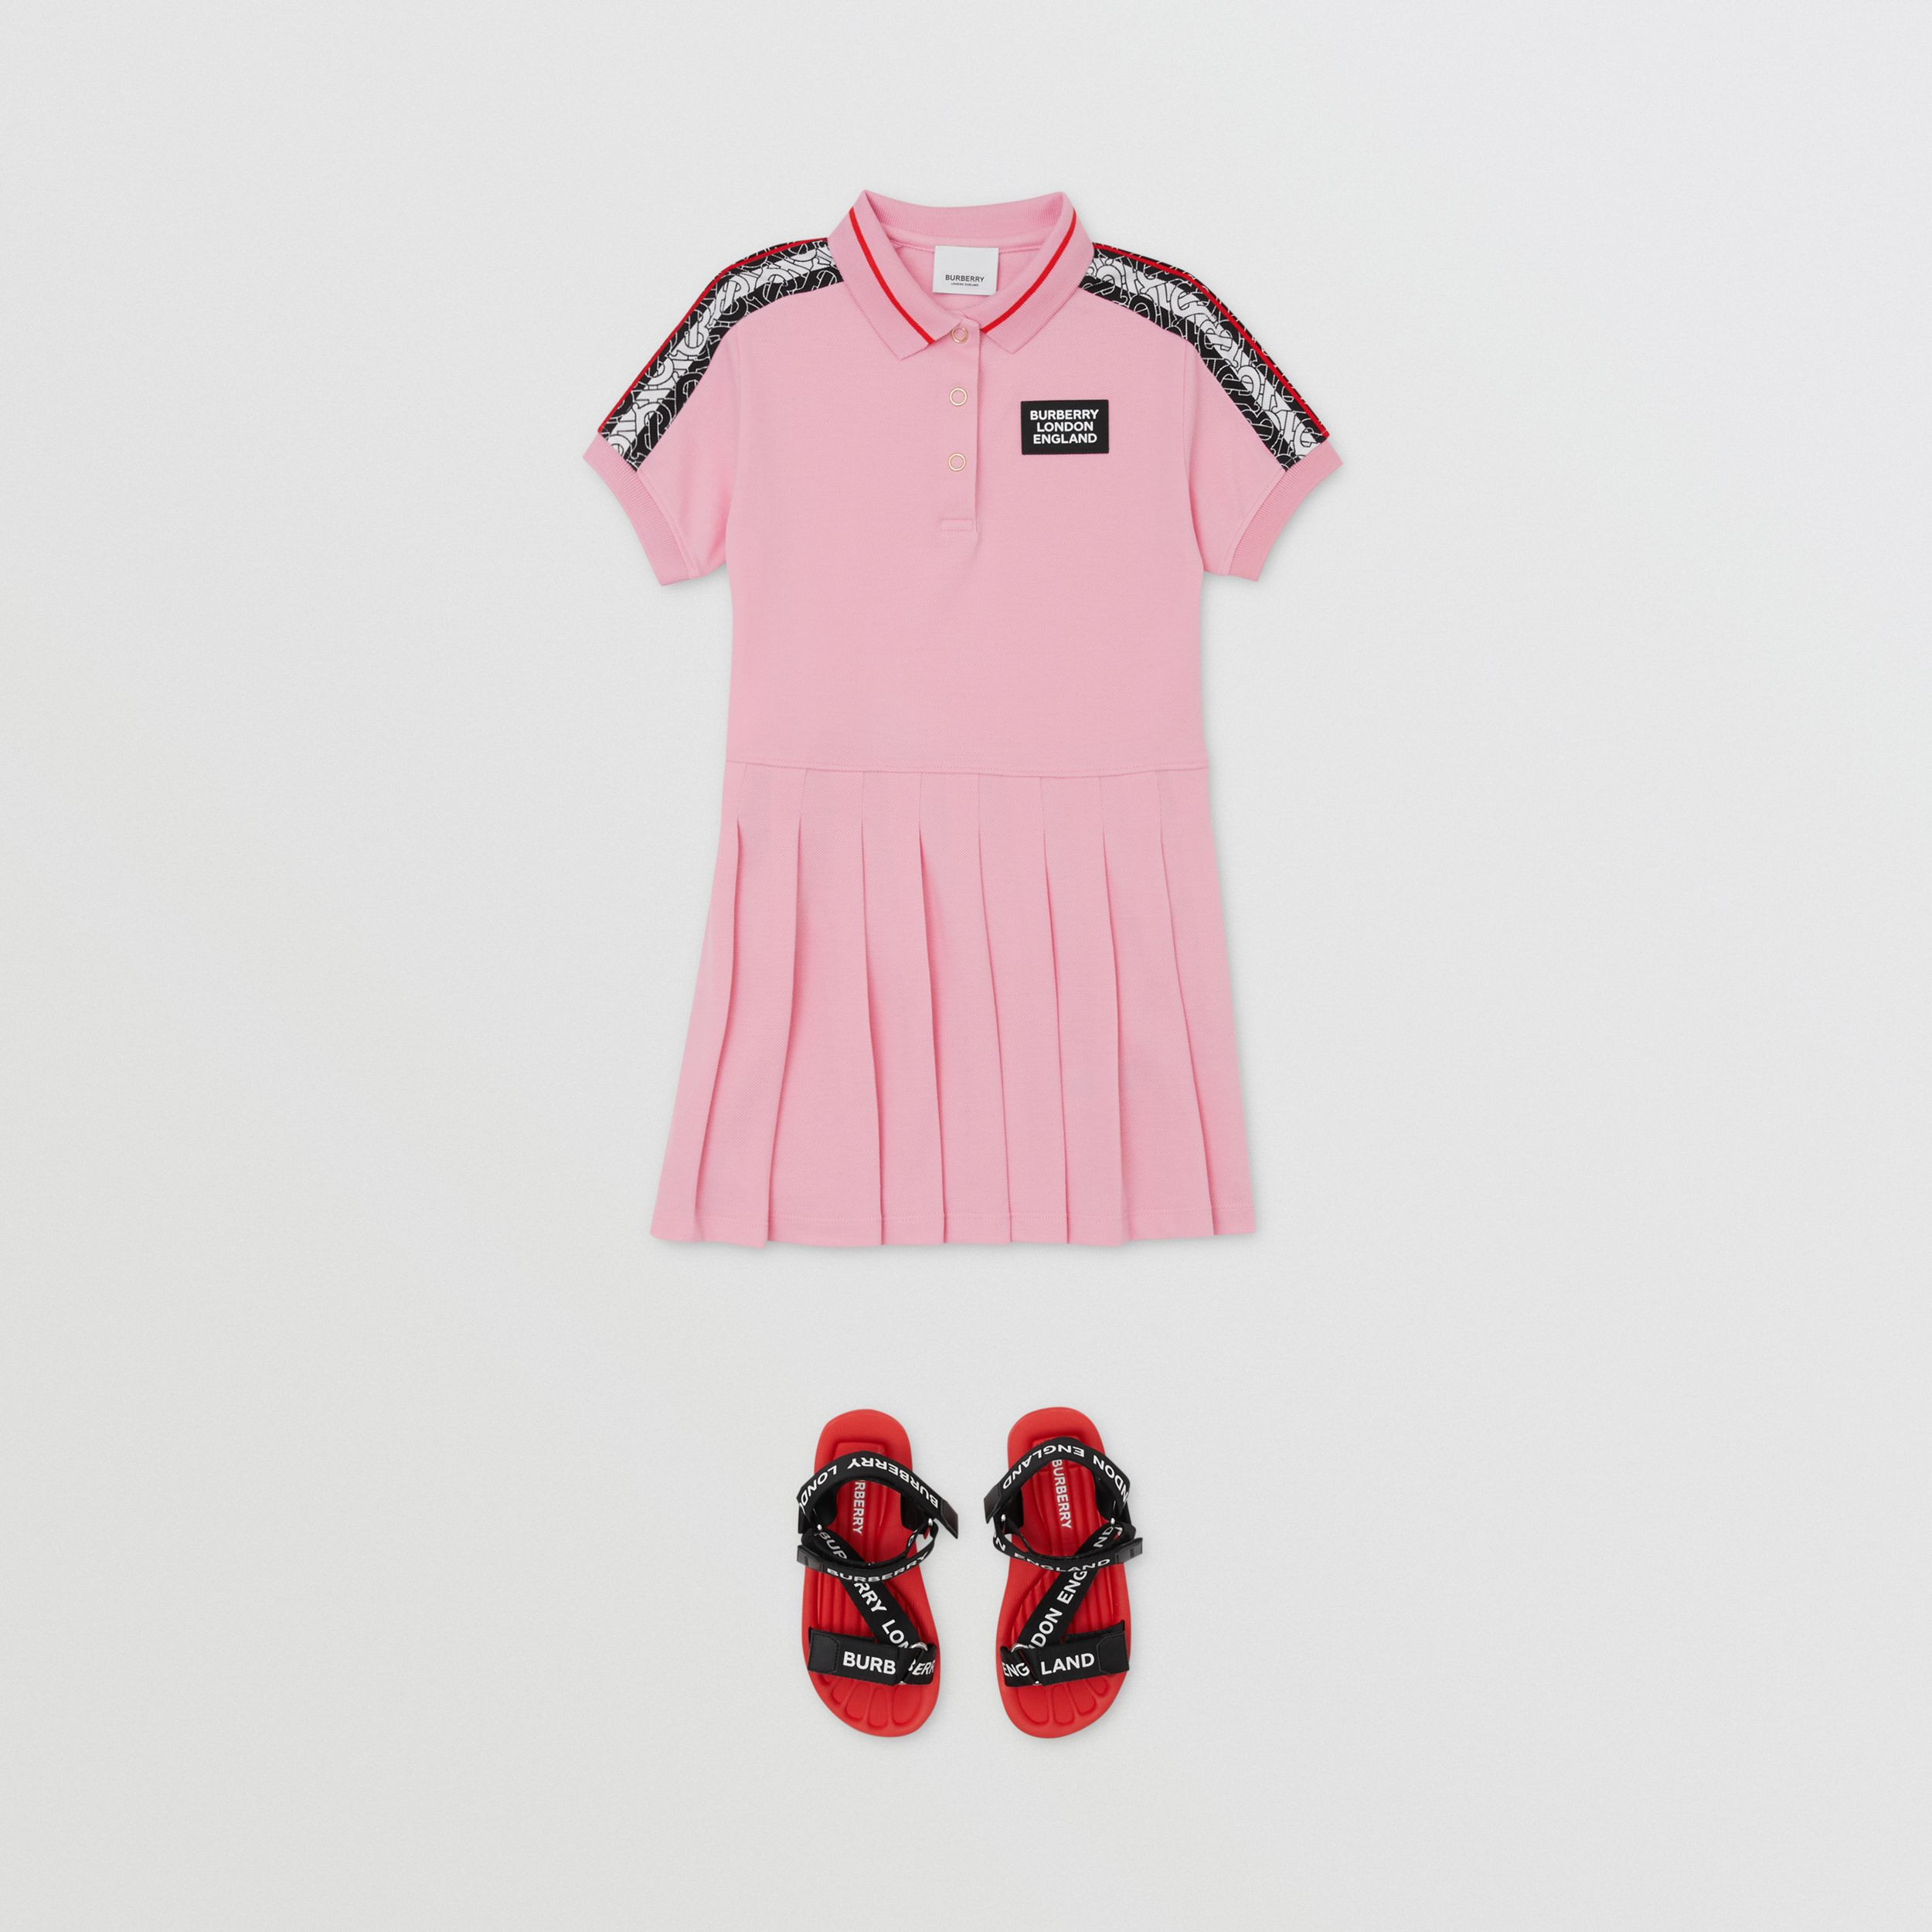 Monogram Stripe Print Cotton Piqué Polo Shirt Dress in Candy Pink | Burberry - 3